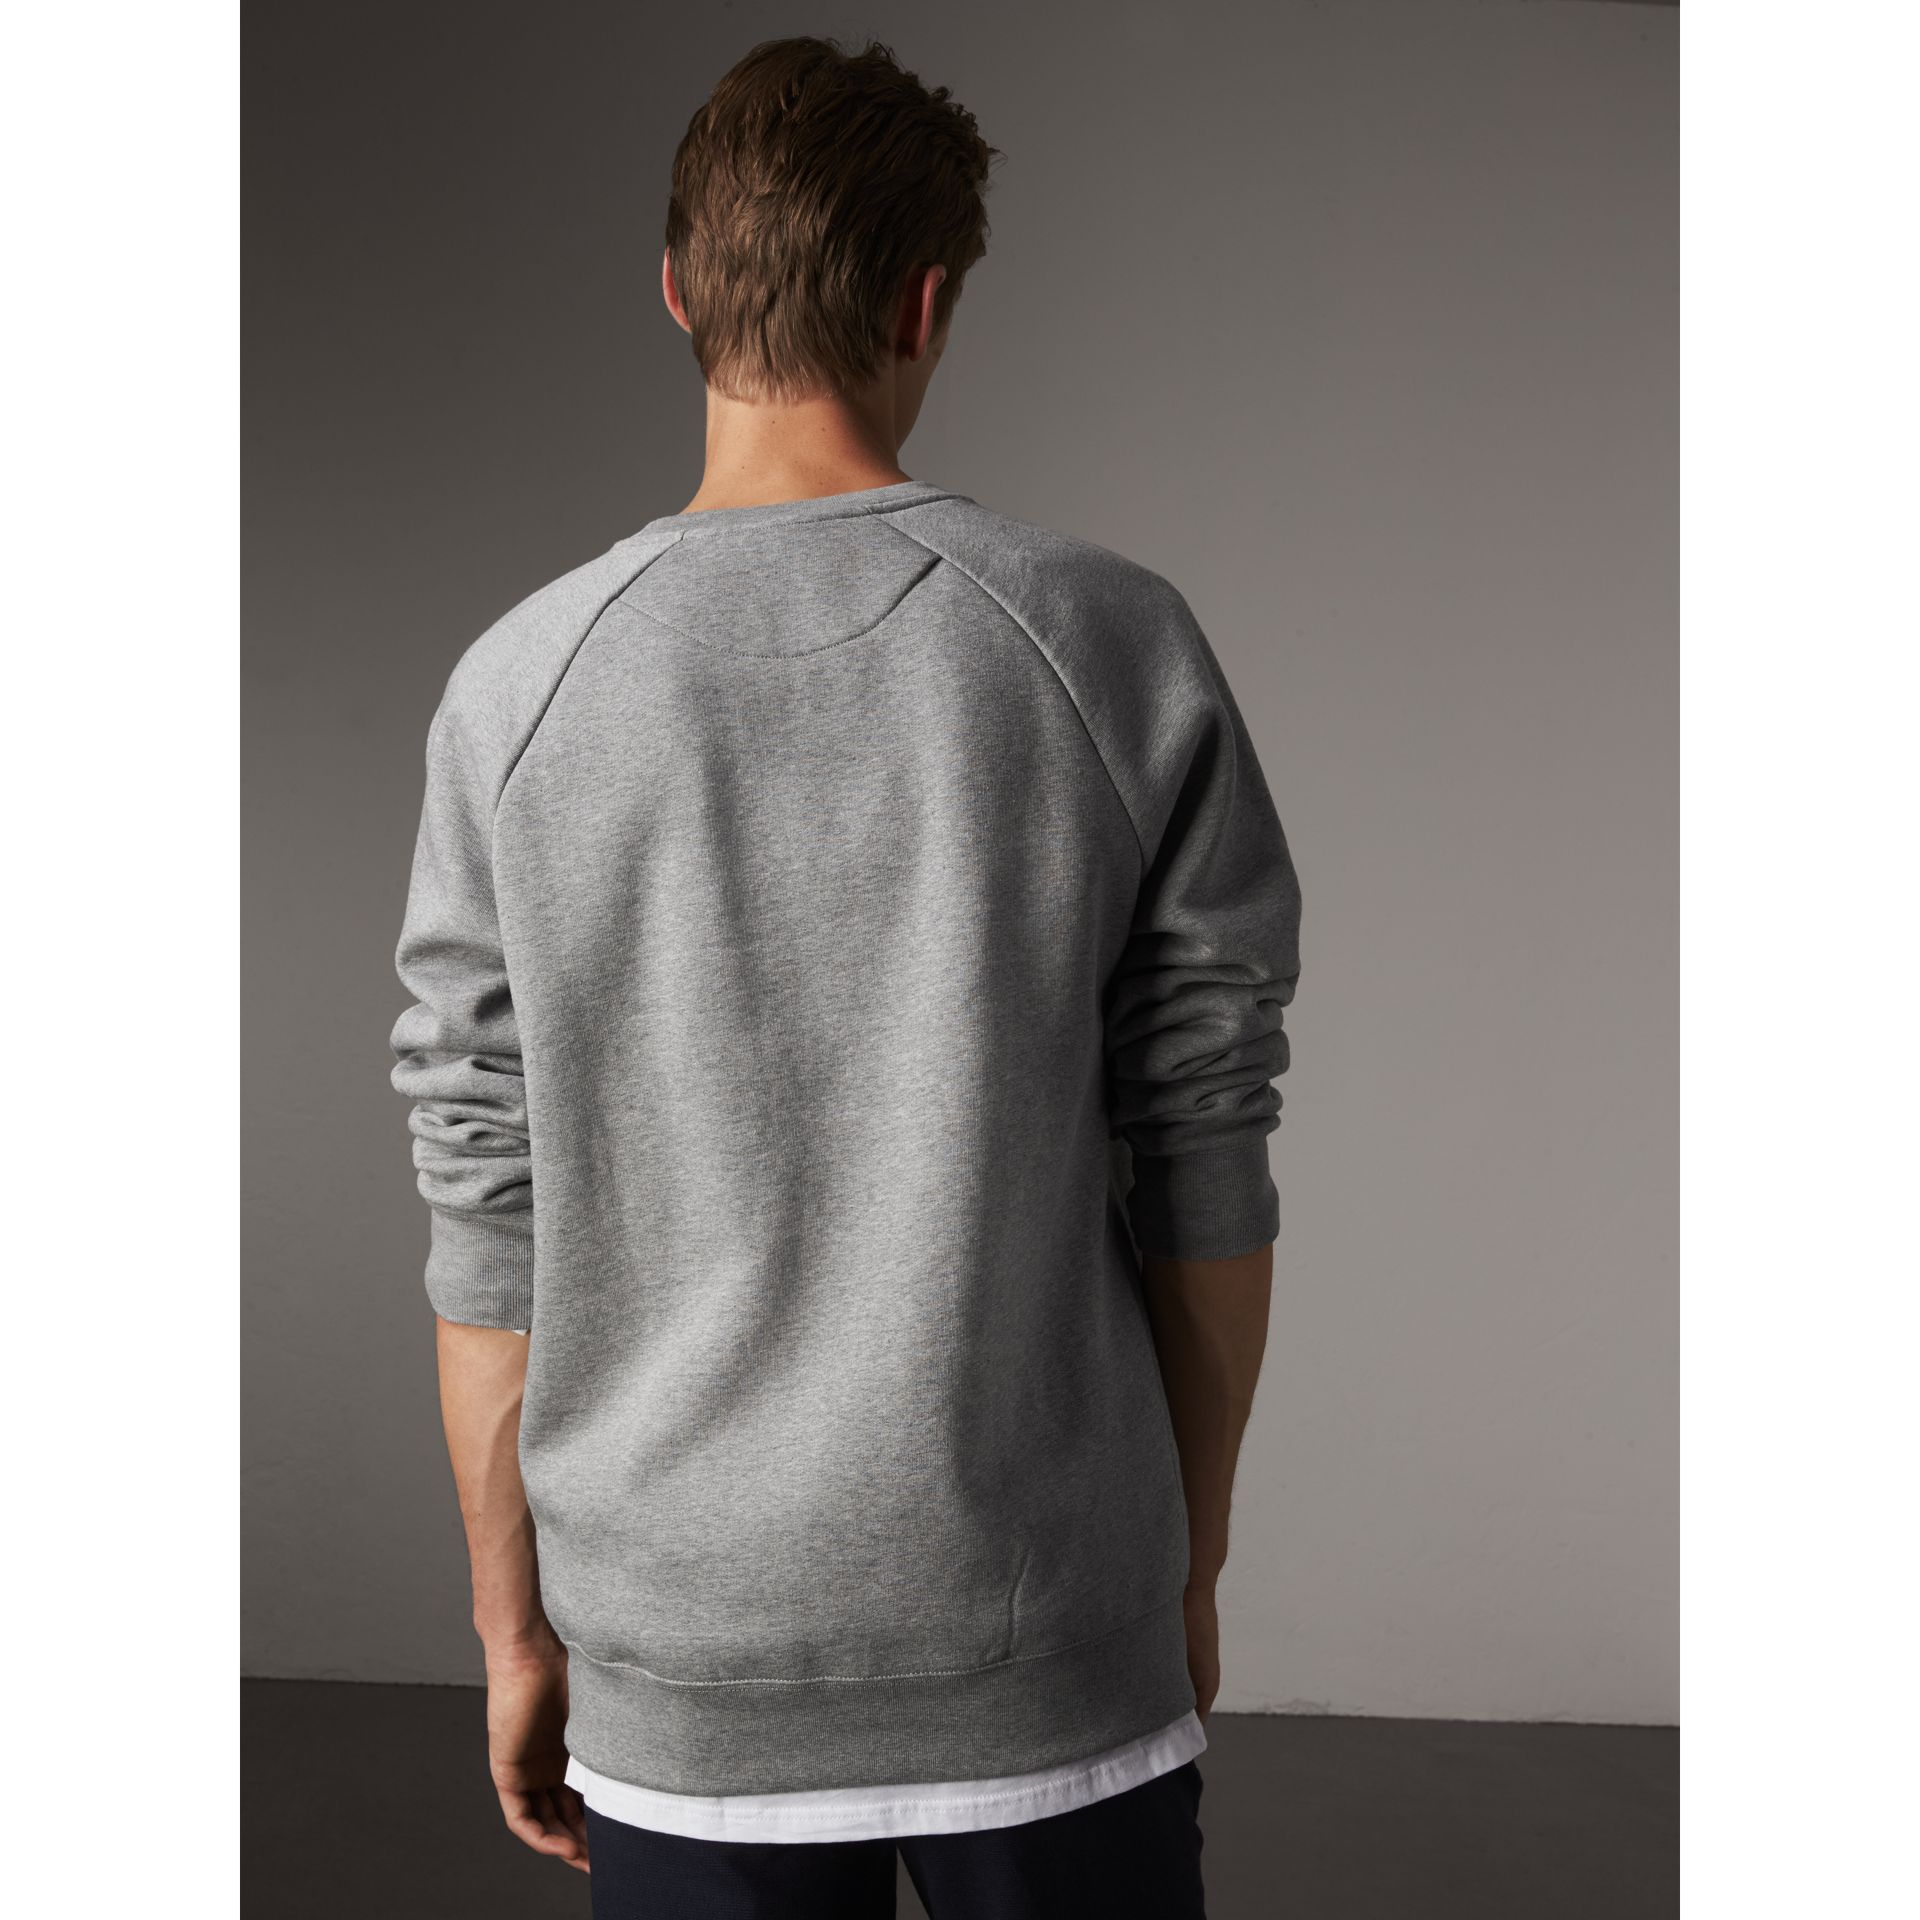 Open Spaces Graphic Motif Cotton Blend Sweatshirt in Pale Grey Melange - Men | Burberry - gallery image 2